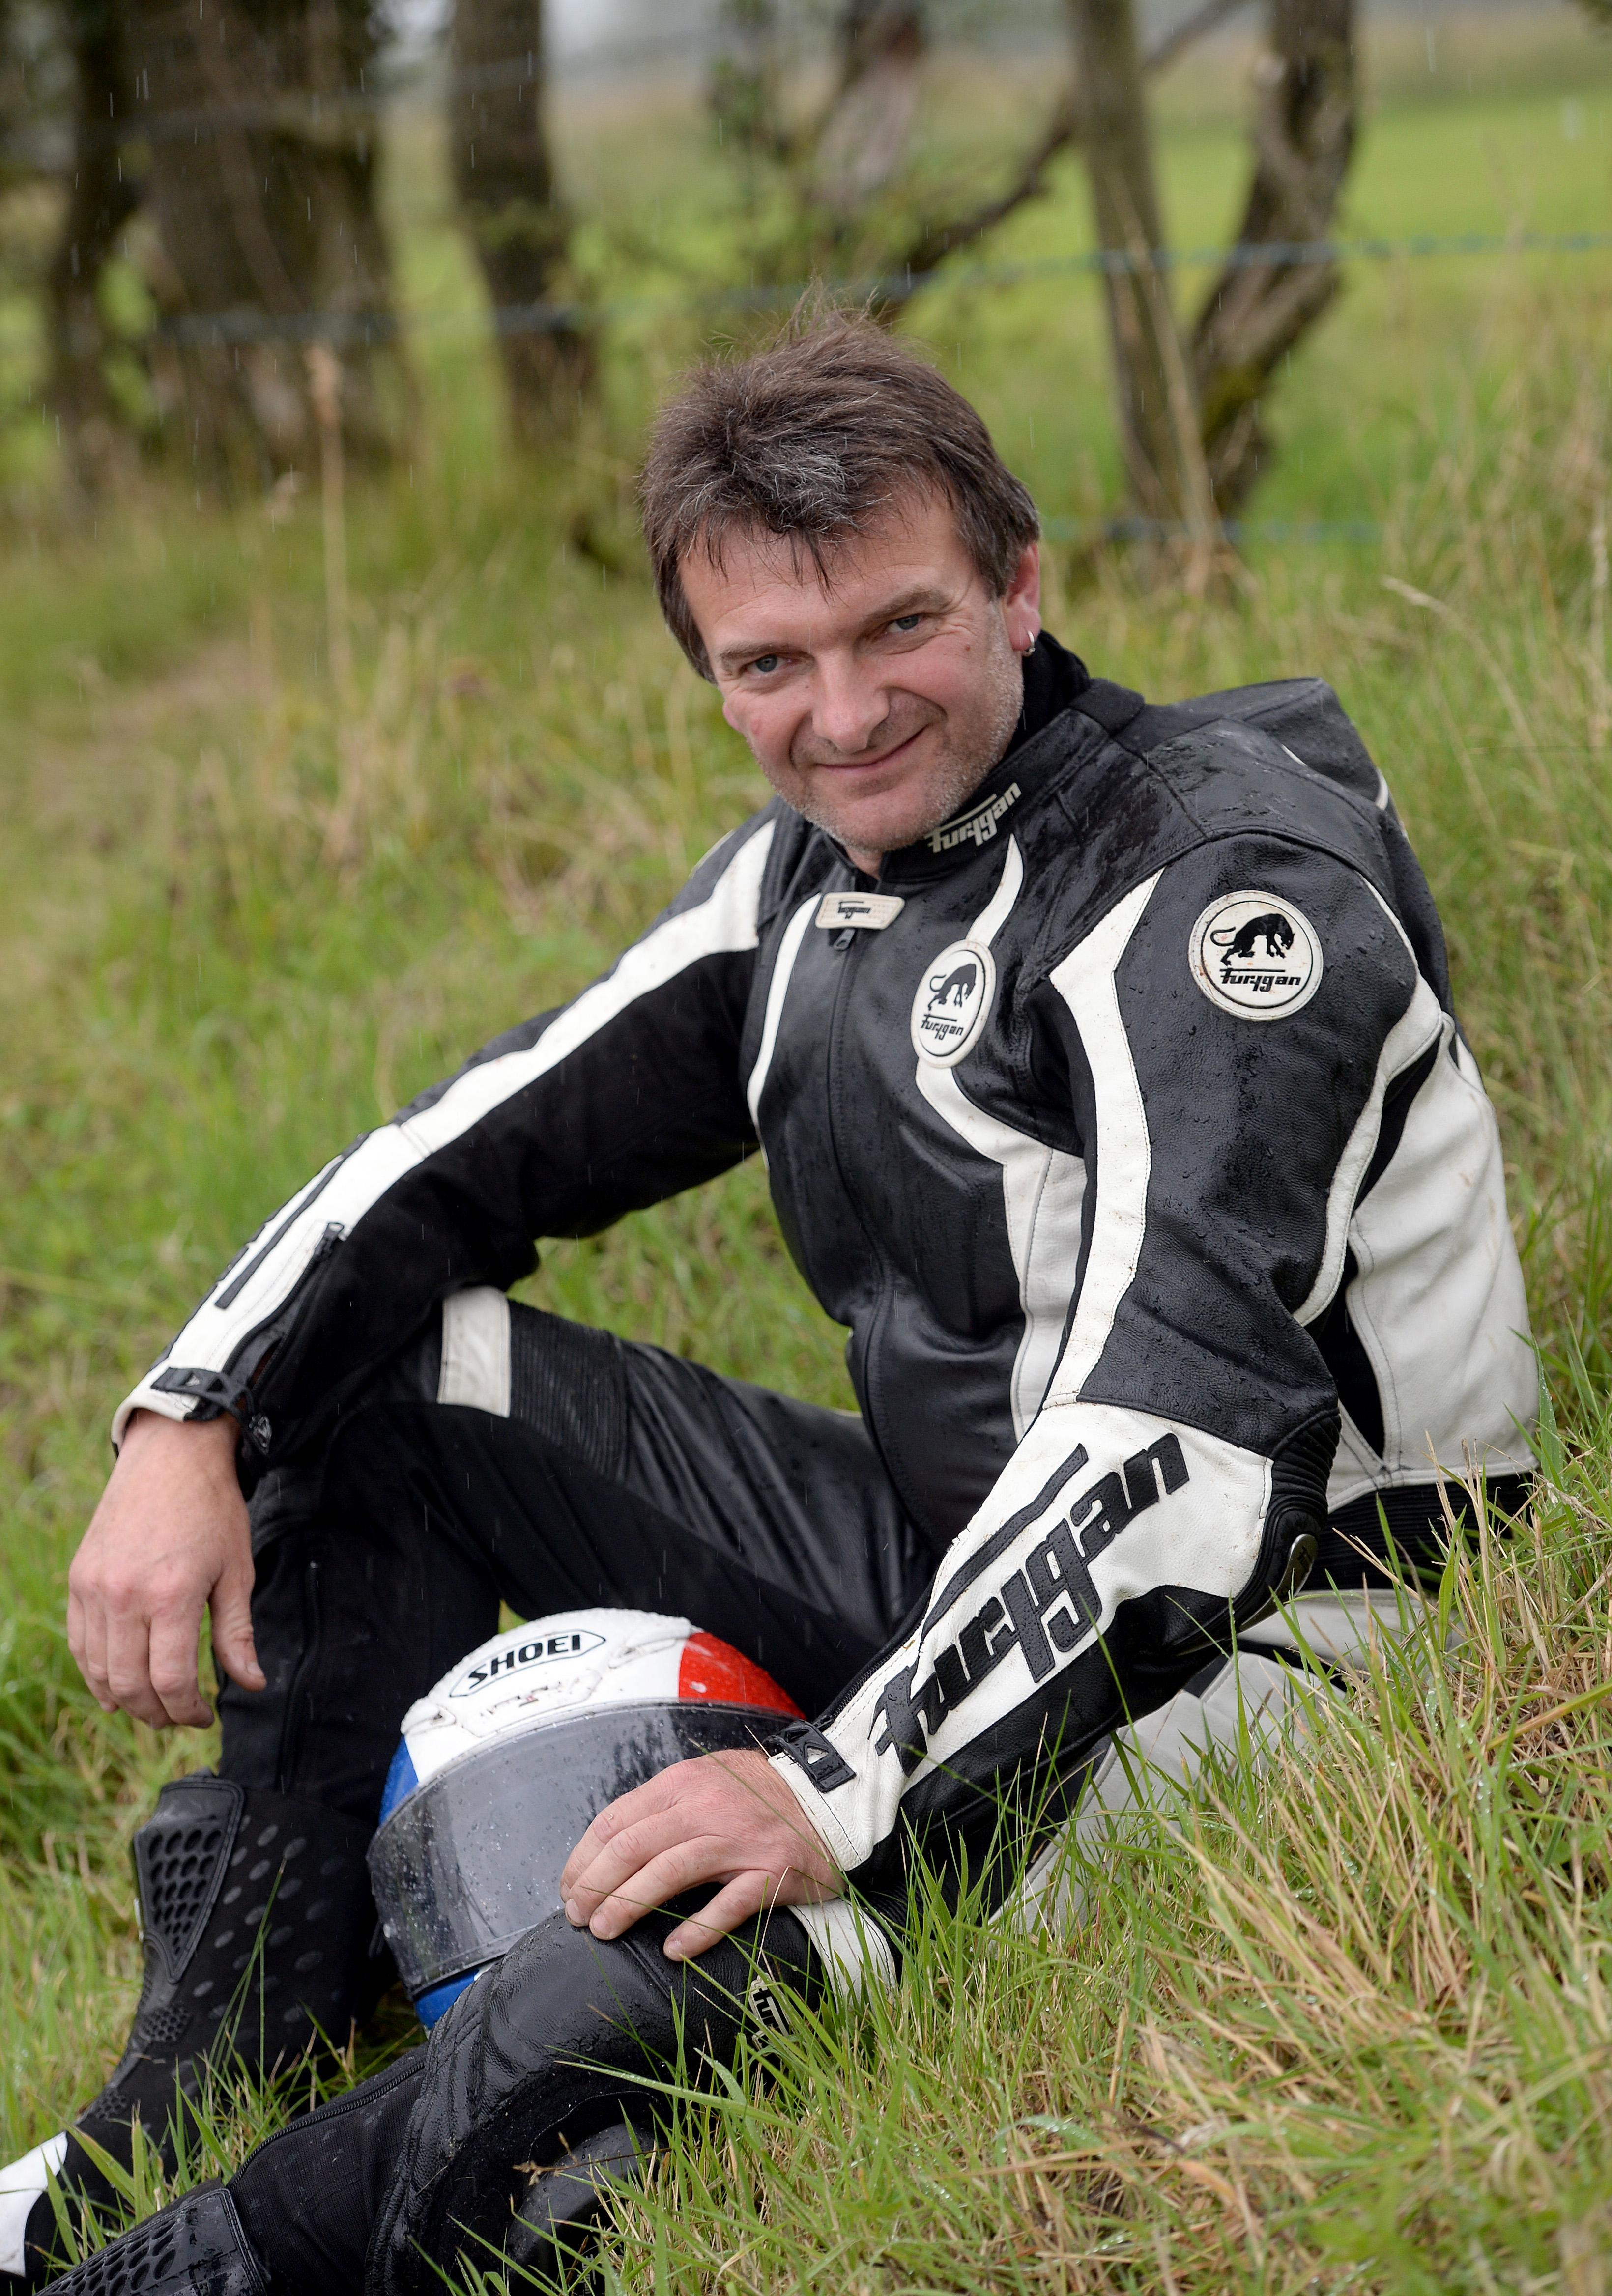 Fabrice Miguet died today aged 49